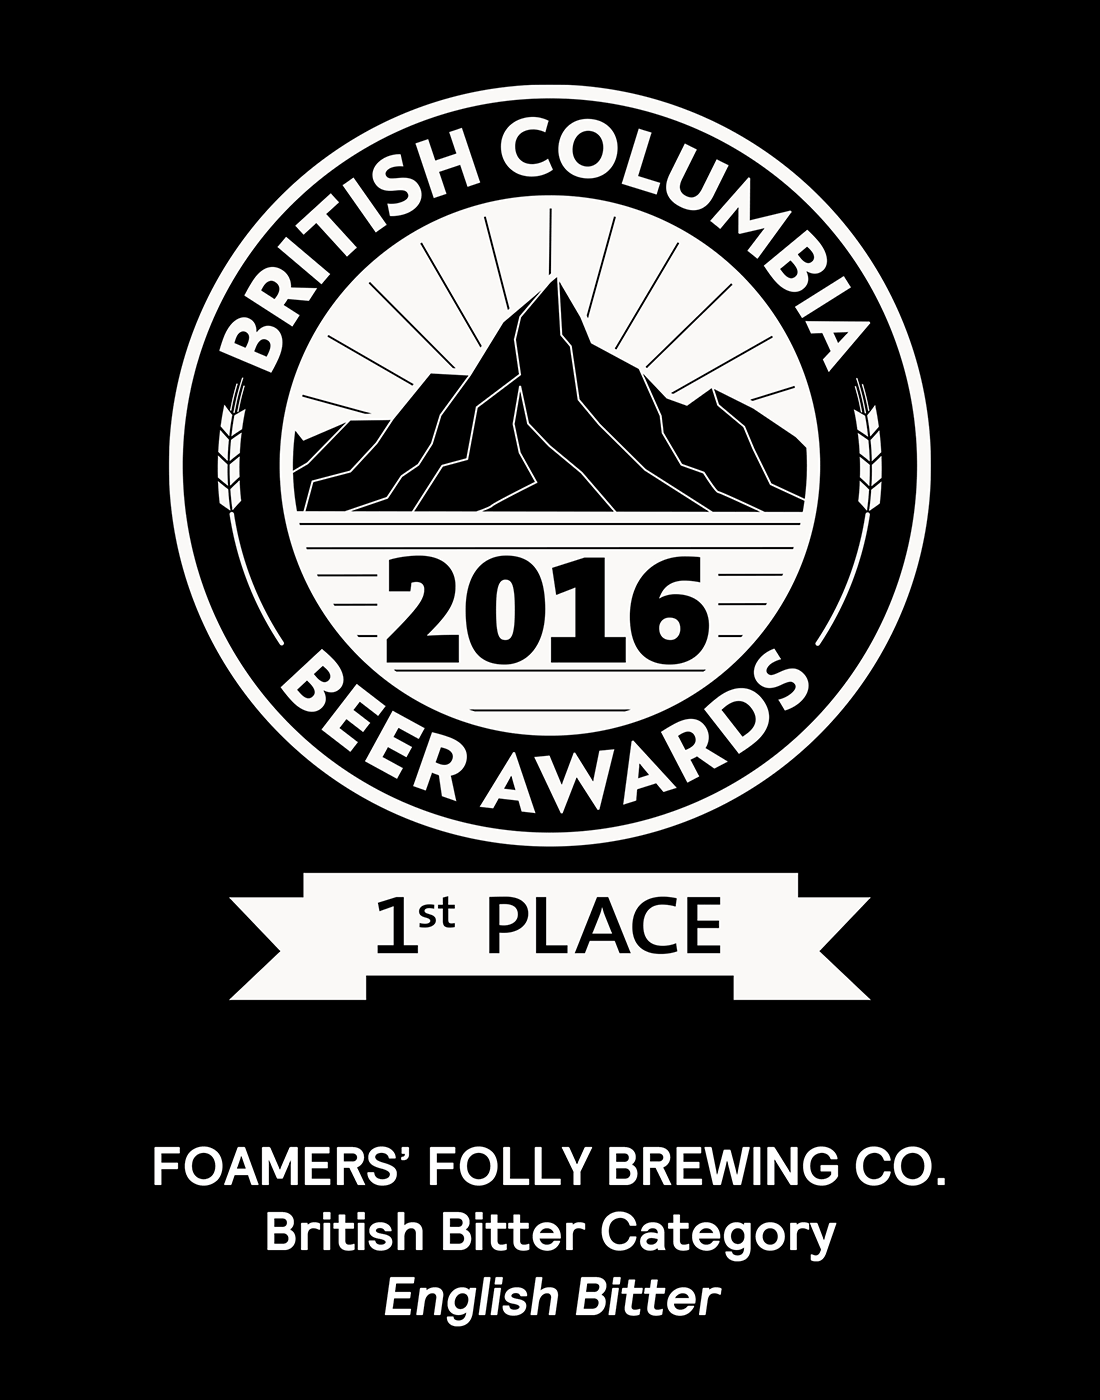 BC Beer Awards 2016, 1st Place in the British Bitter Category for our English Bitter